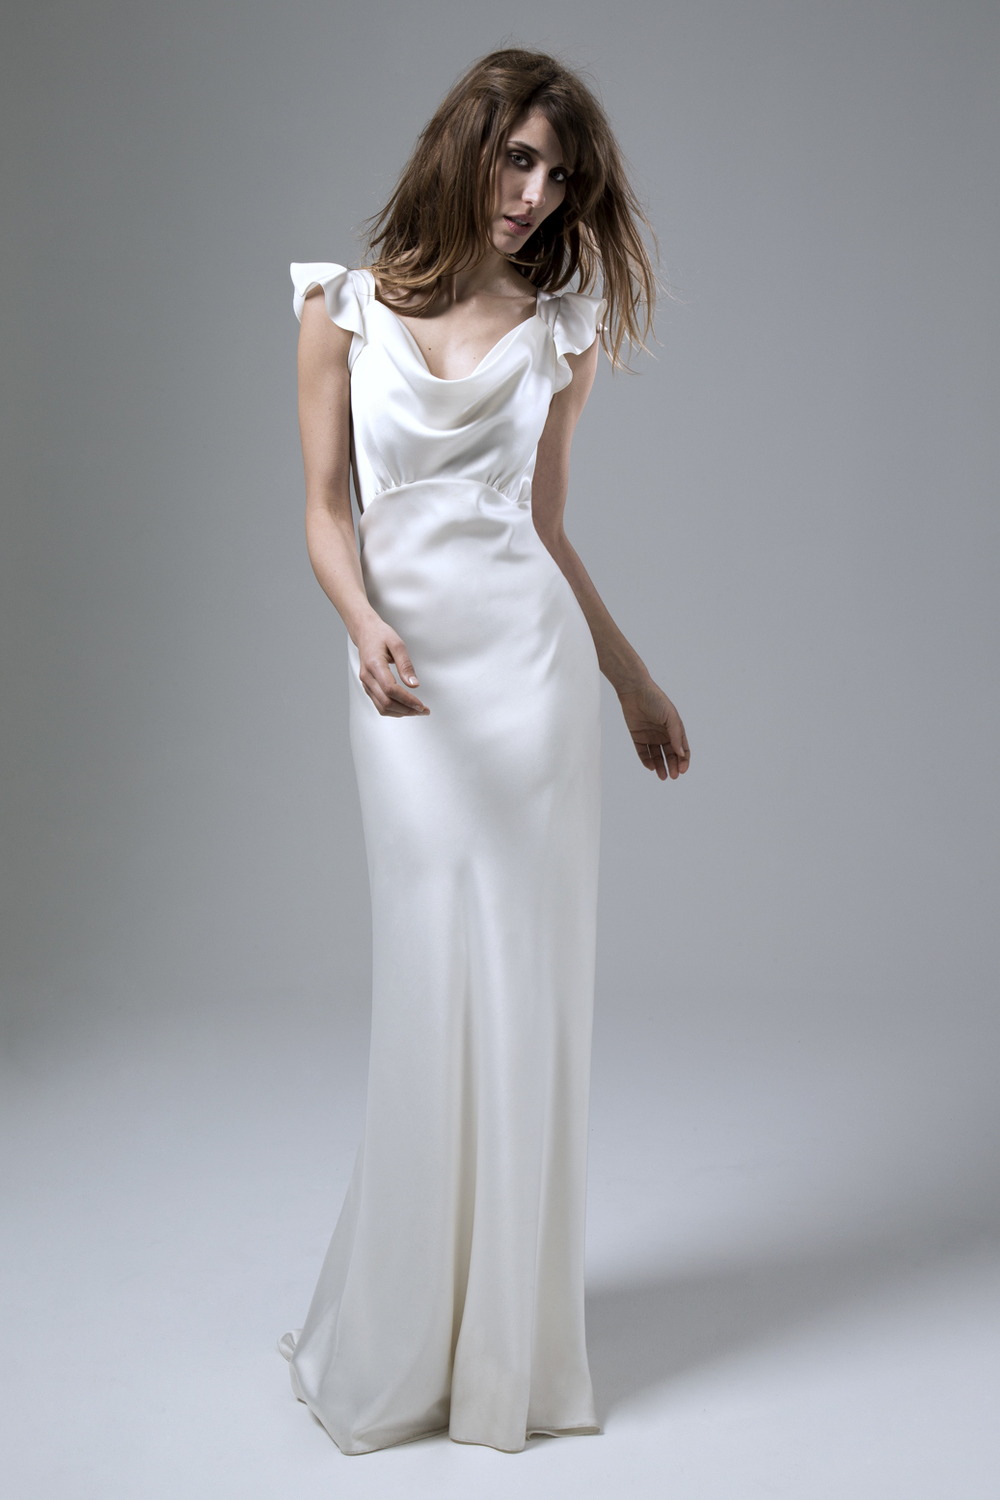 SARAH SOFT COWL NECK AND EMPIRE LINE BIAS CUT SATIN WEDDING DRESS BY HALFPENNY LONDON